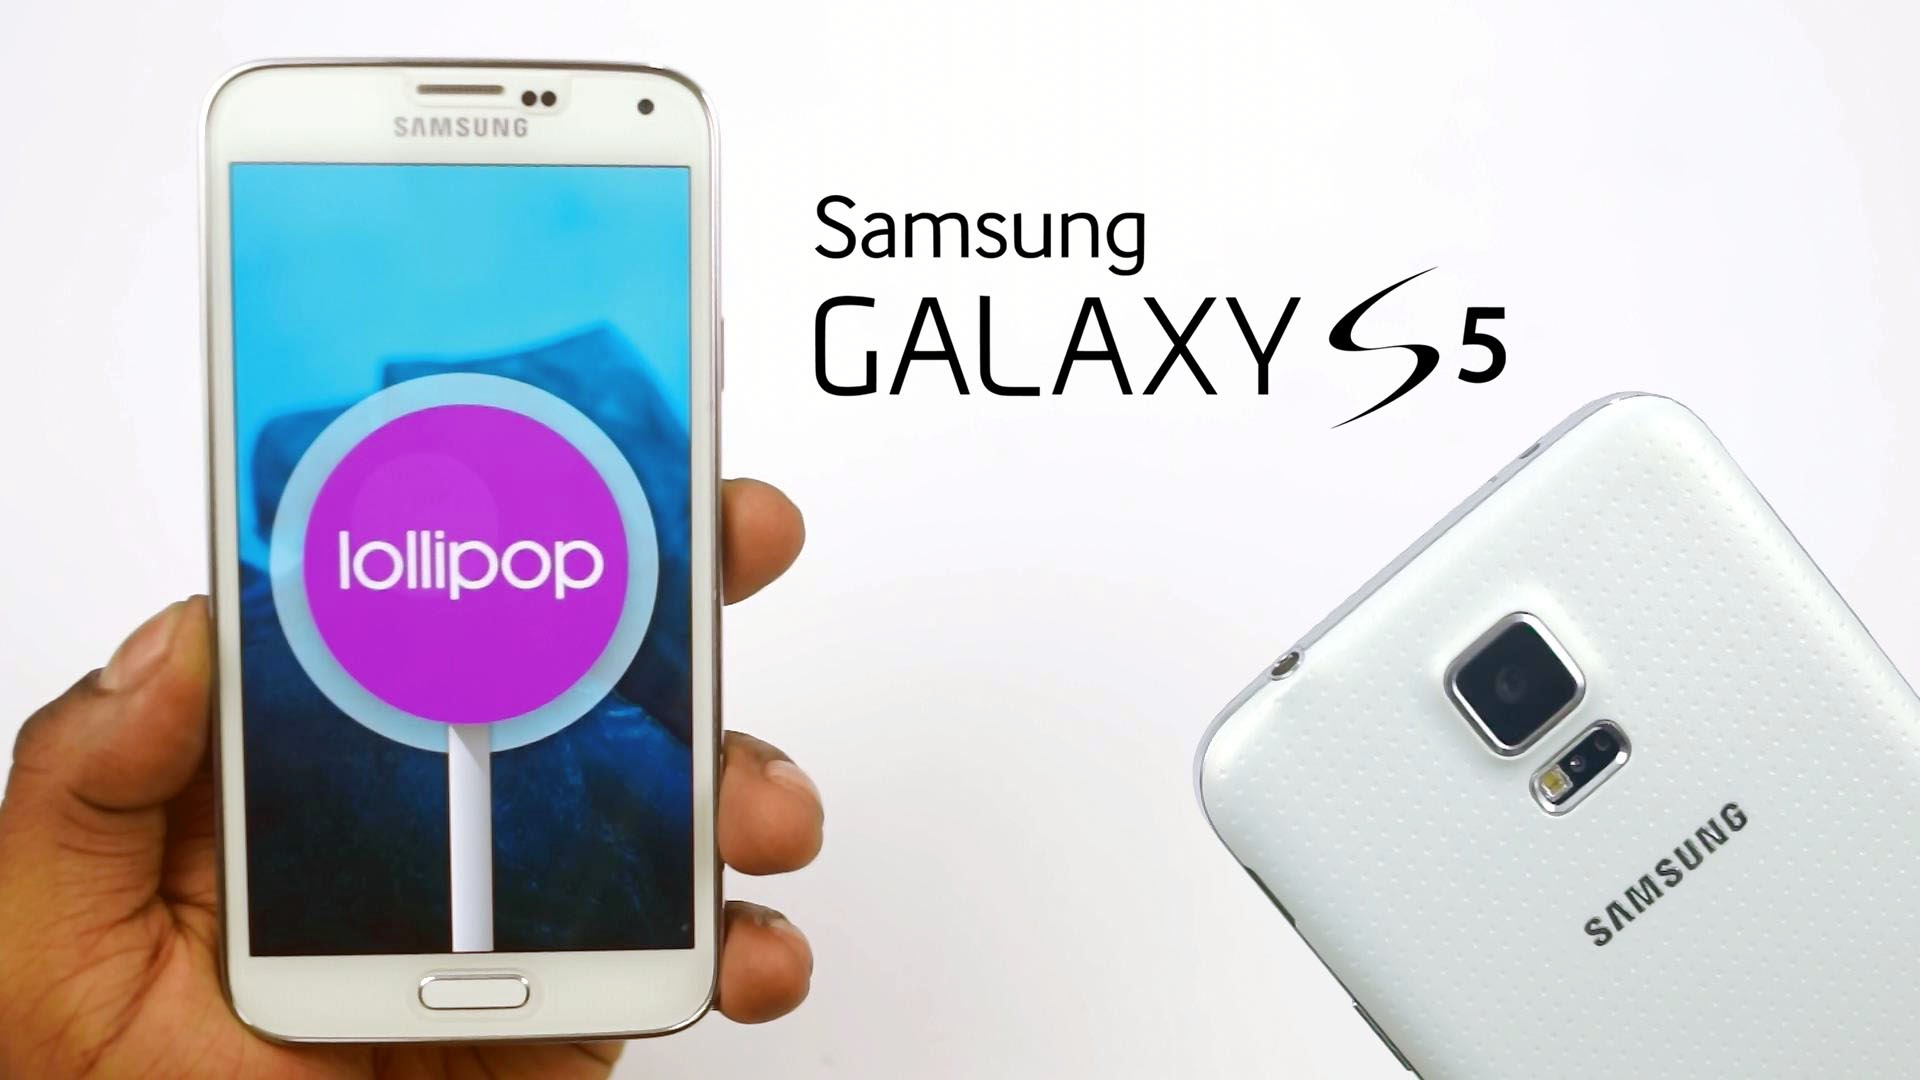 Get moar Lollipop on the Galaxy S5 if you're tired of waiting - Geek